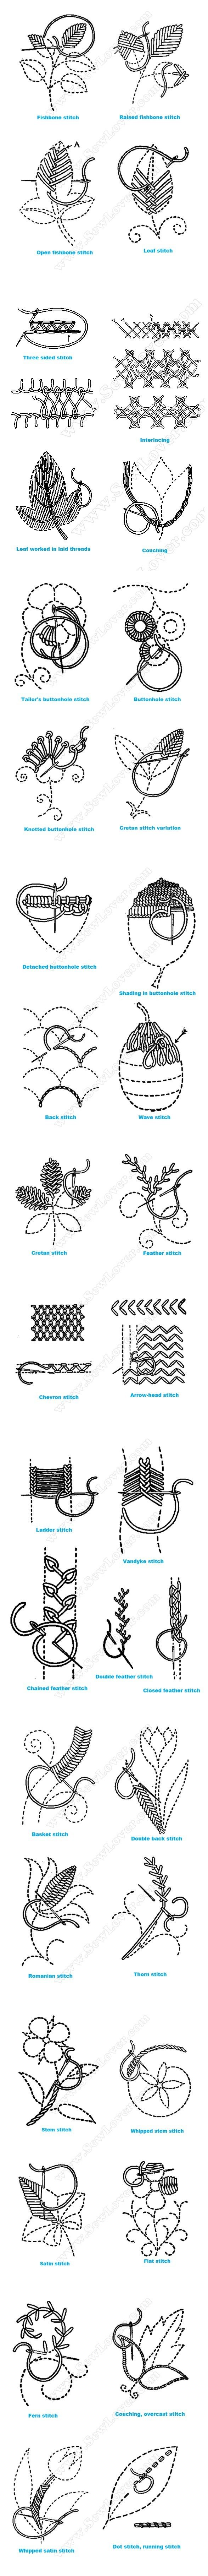 Fishbone,leaf,interlacing,leaf,cretan,knotted,buttonhole,wave,feather,chevron, stitch, arrow,ladder,vandyke,basket,romanian,thorn,stain, flat, fern, dot, whipped